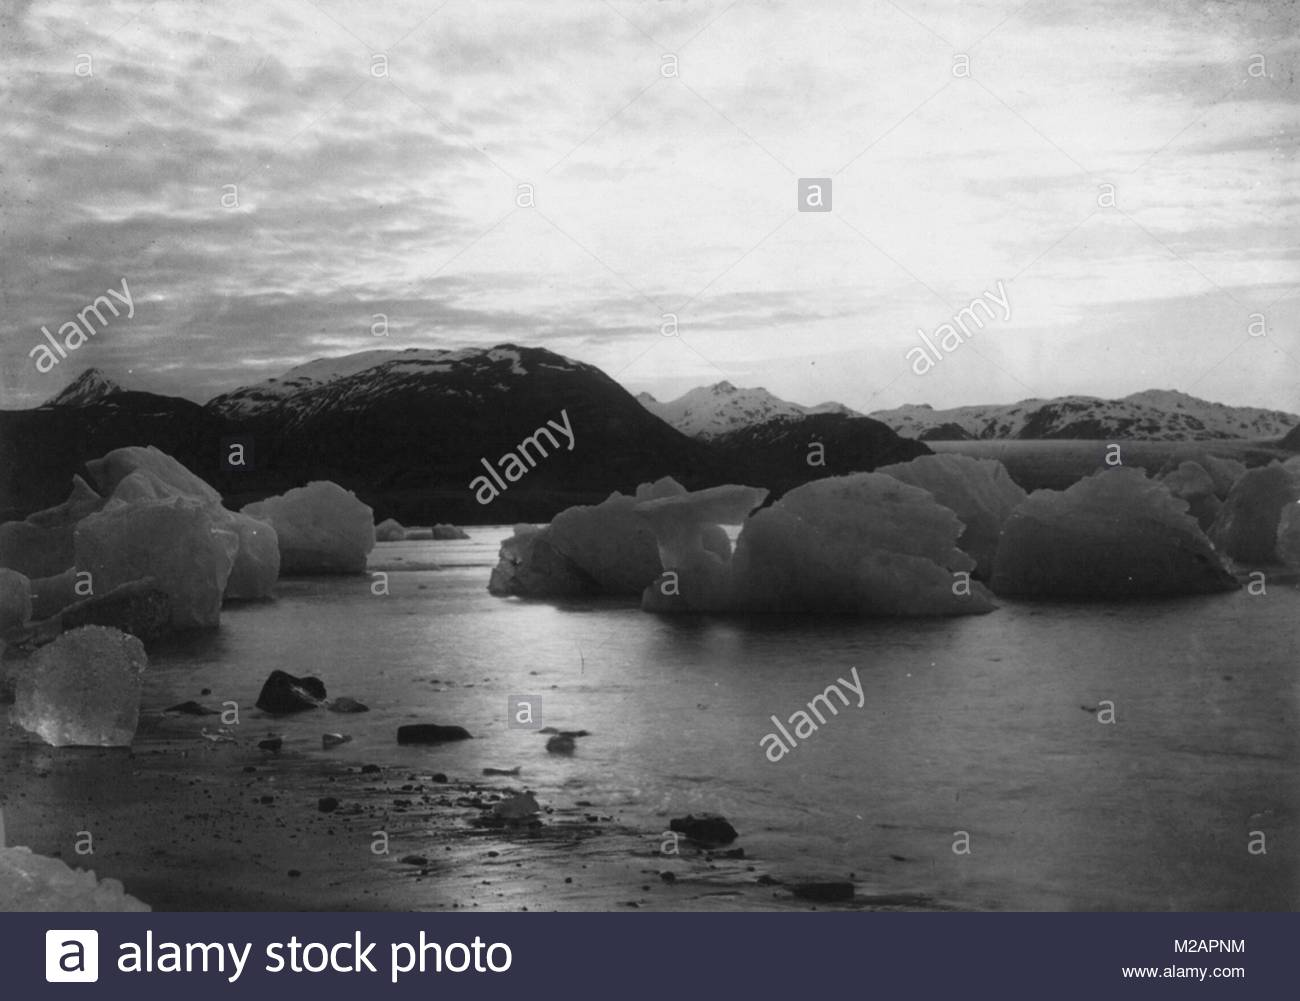 Photograph of large ice formations in water - Stock Image